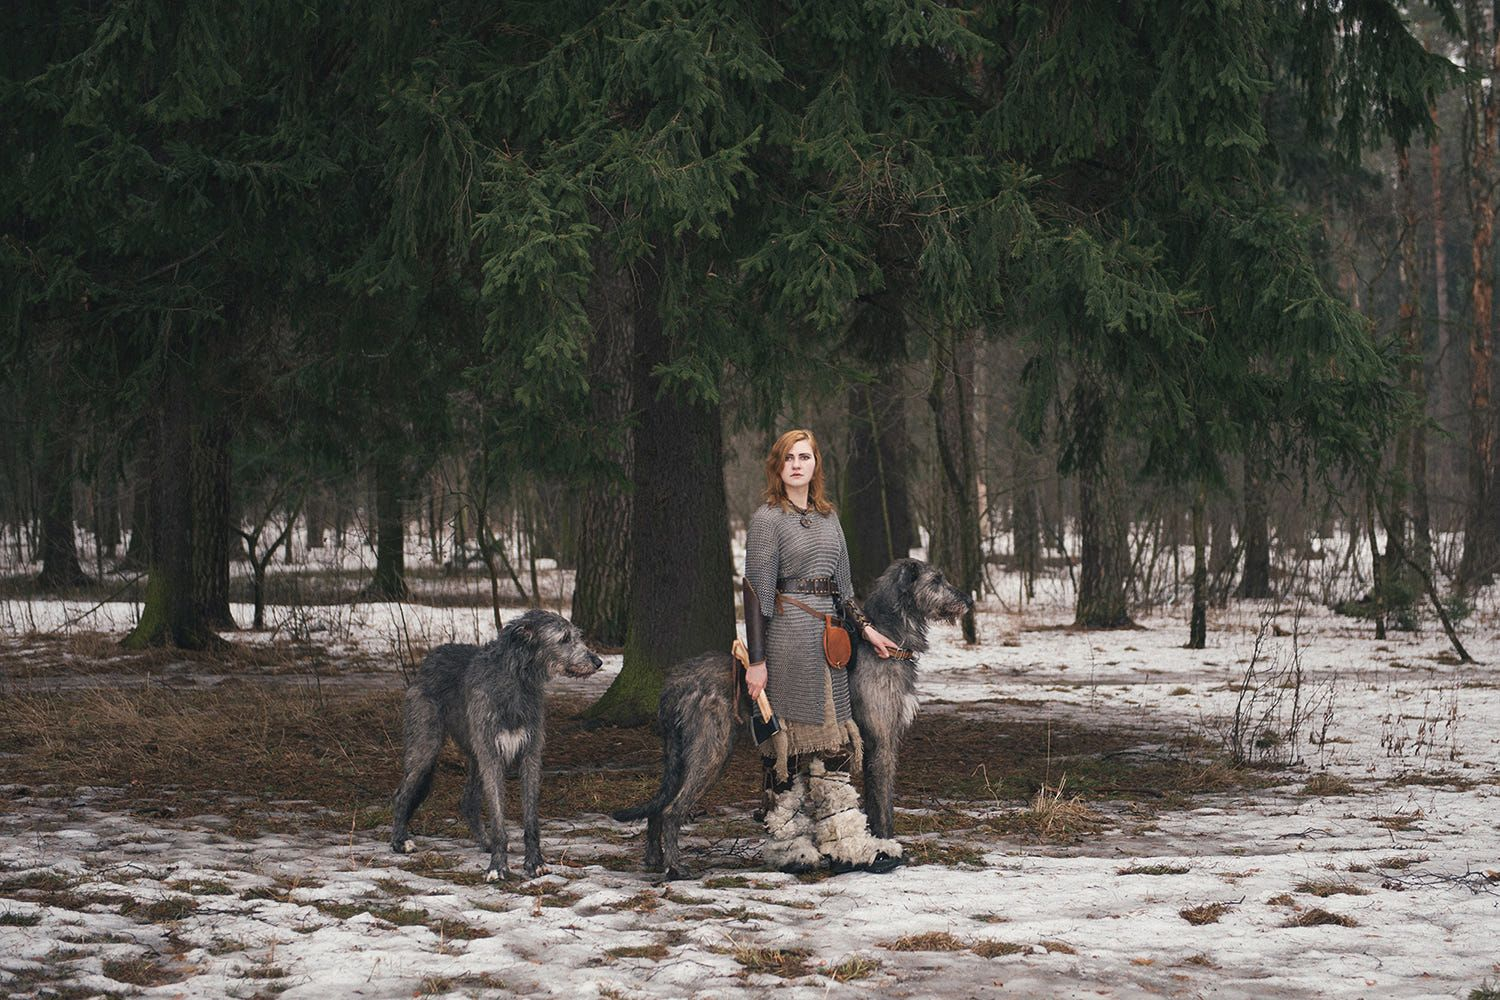 Irish Wolfhound Image By Paul Ideler On Forests